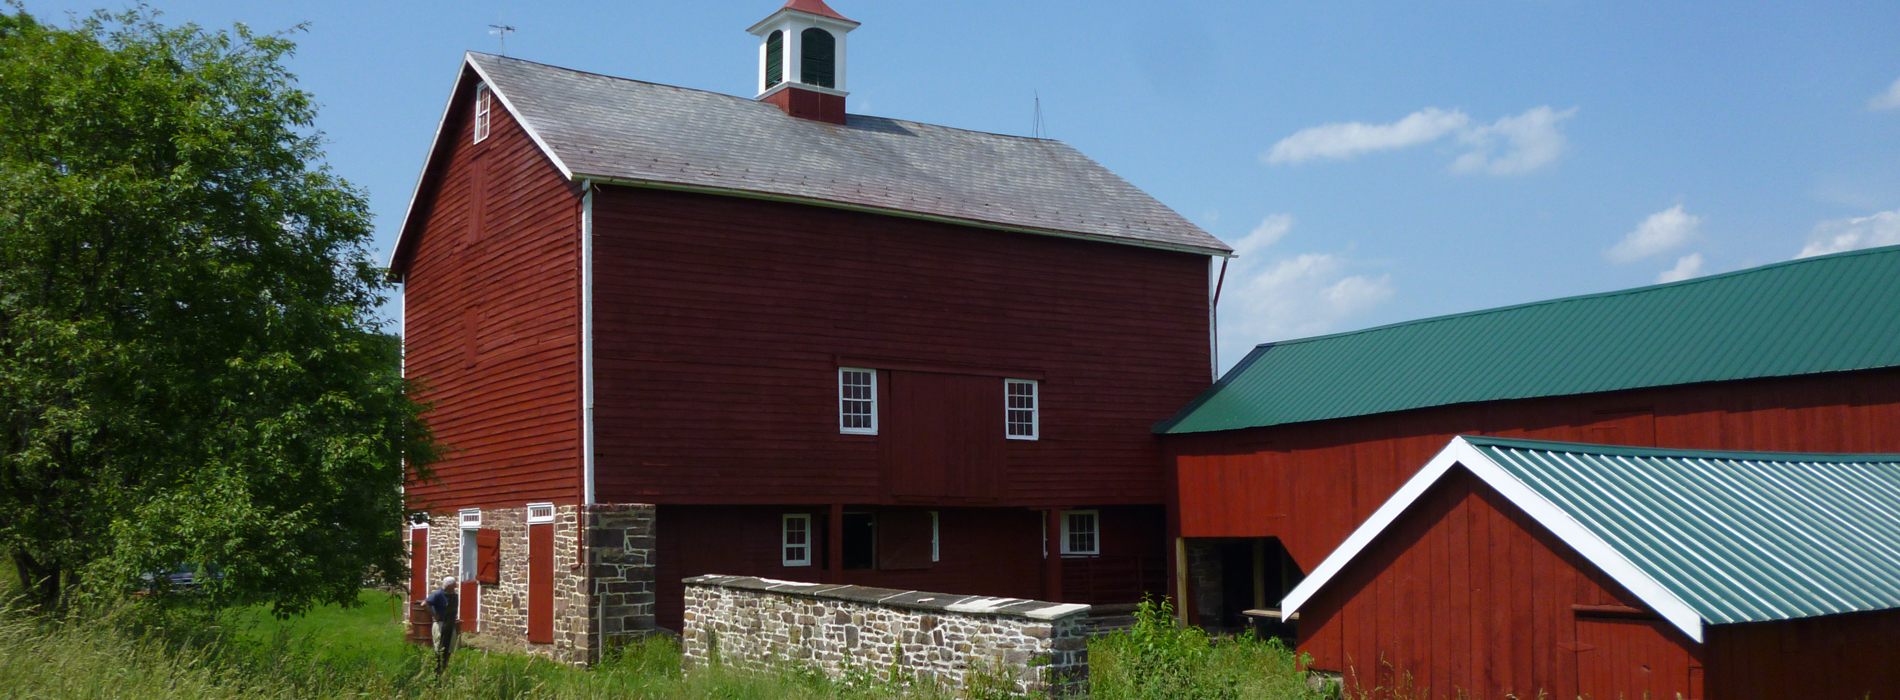 Historic Barn Preservation Restorations Barn Conversions